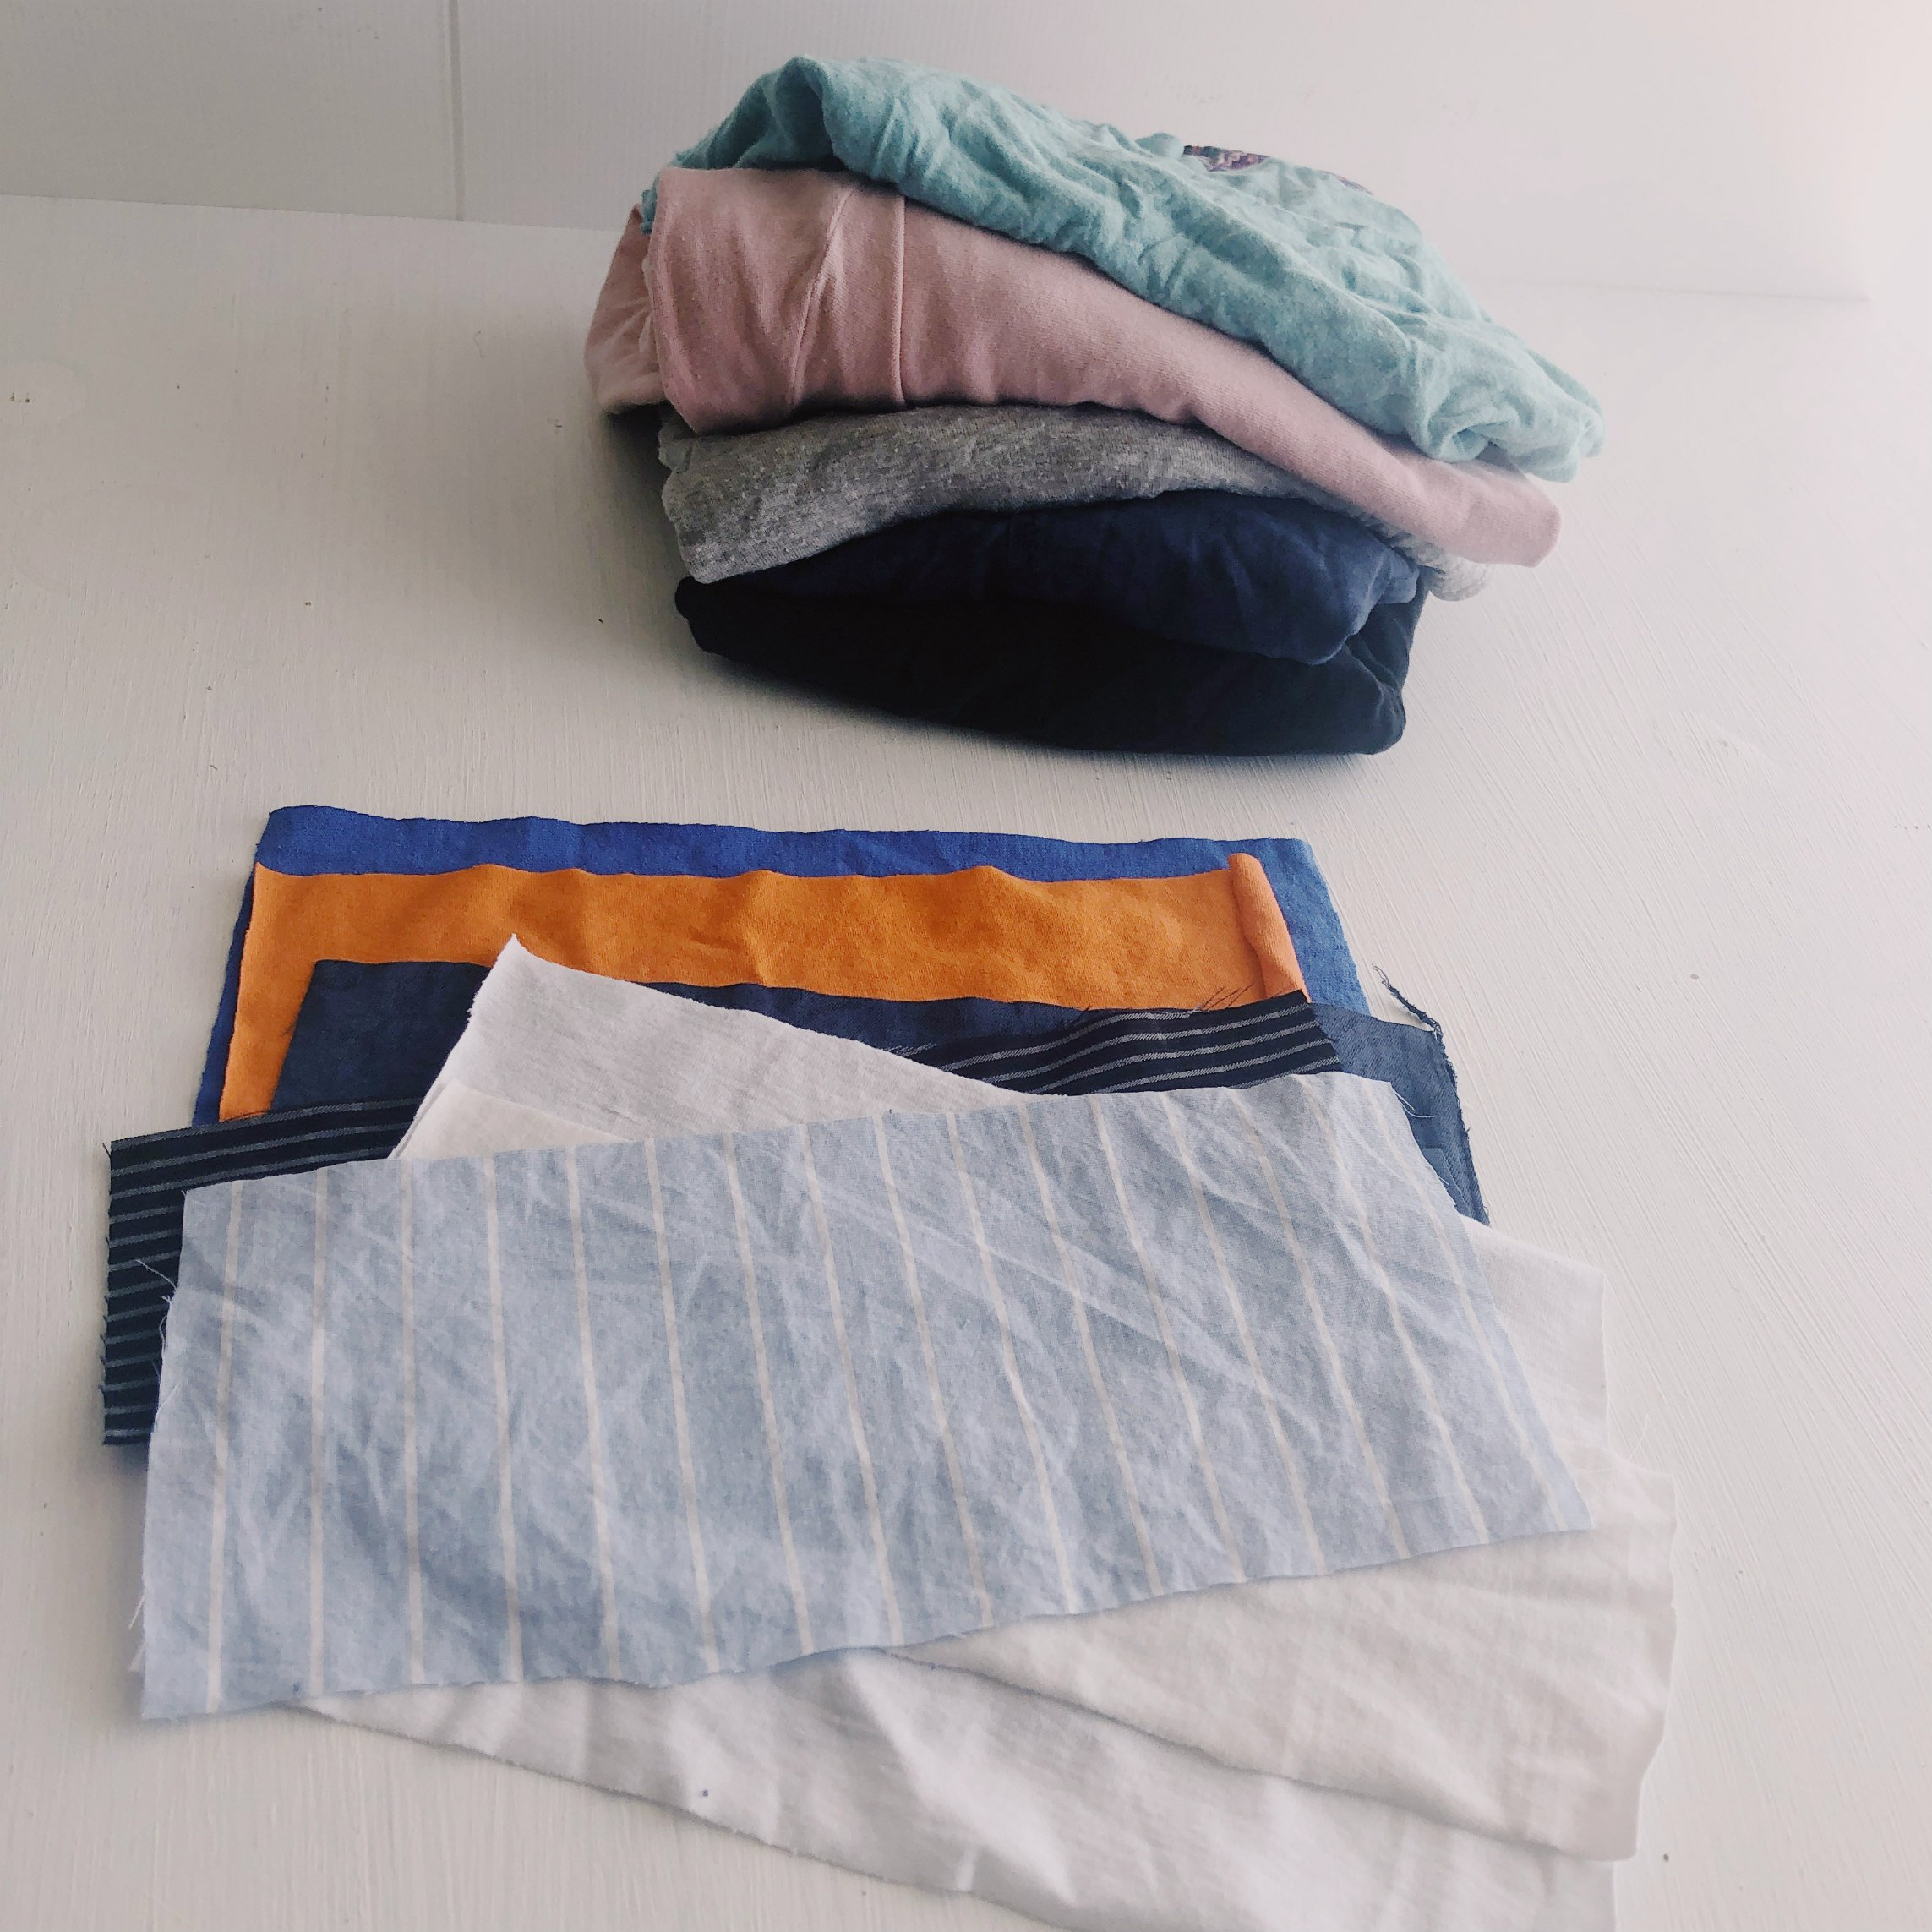 Old clothing used to make bags; upcycling